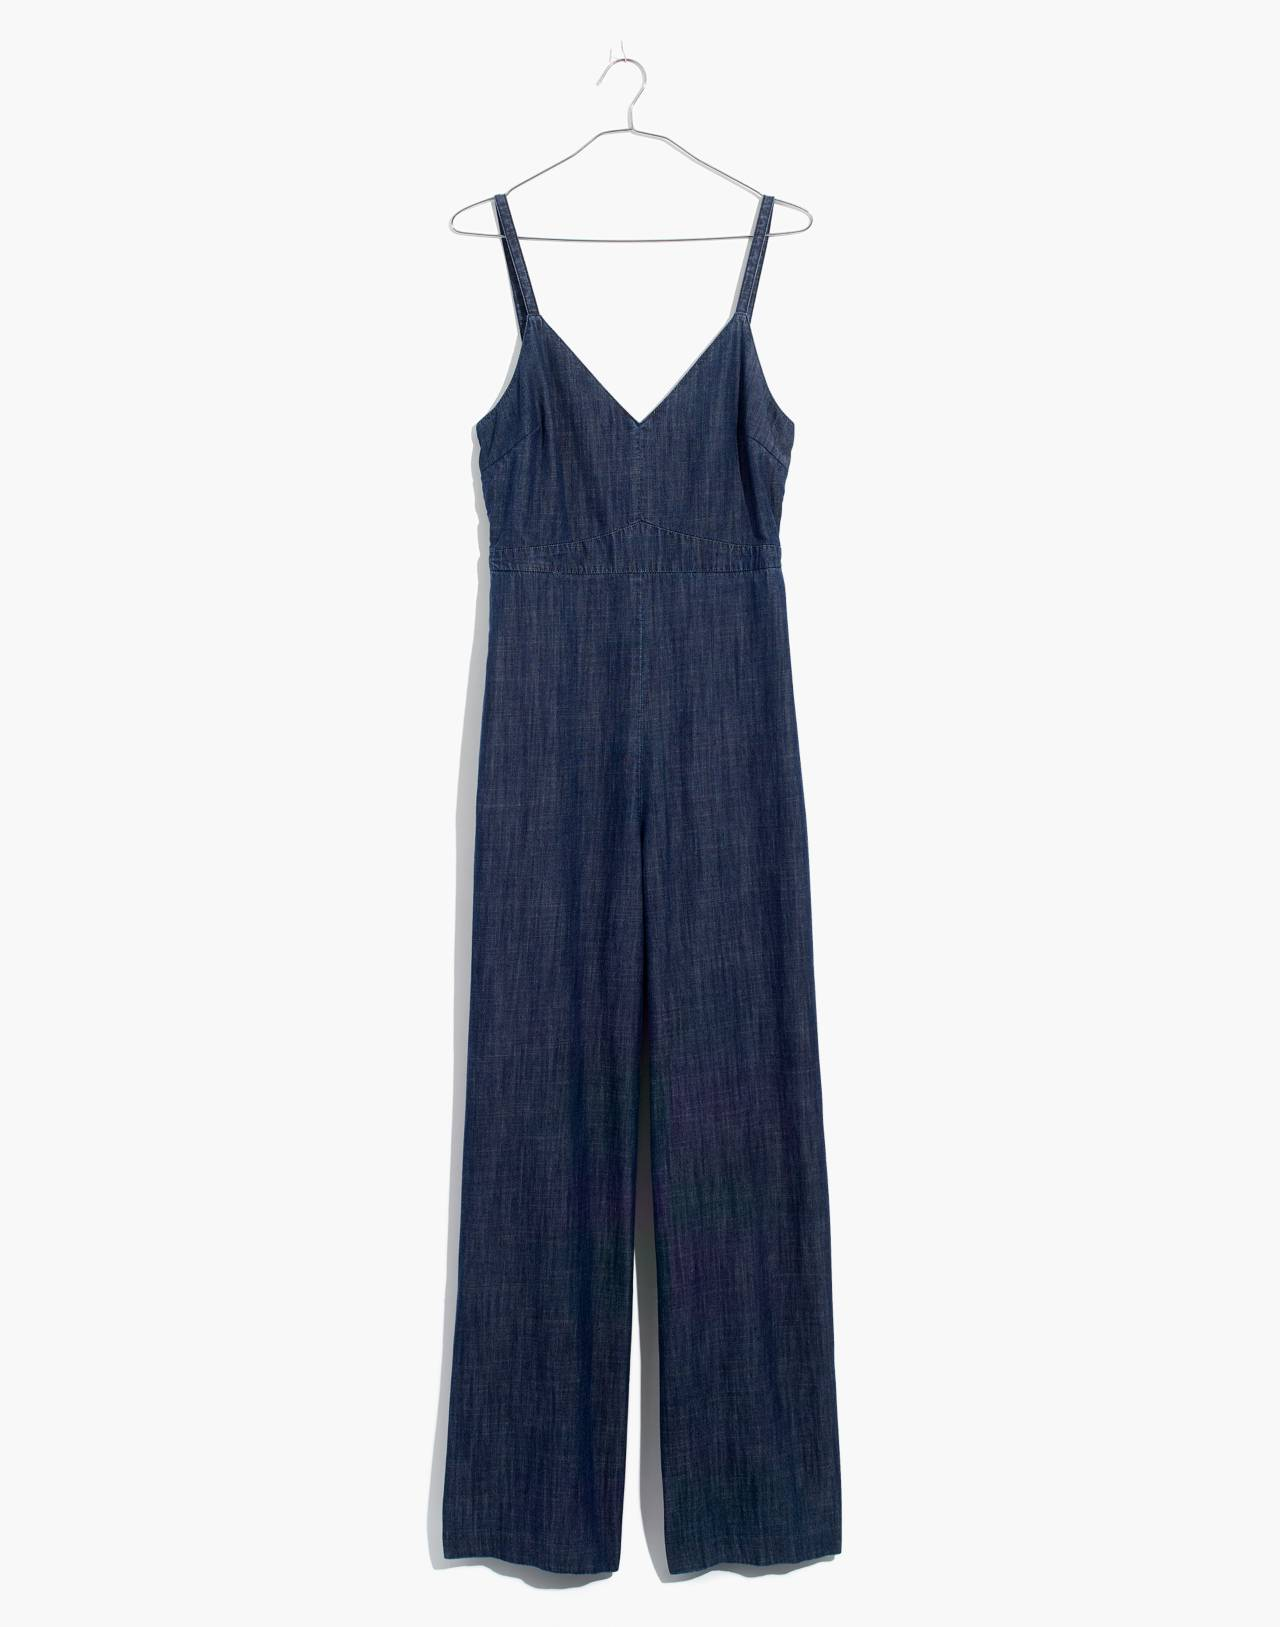 Denim Thistle Cami Jumpsuit in kenney wash image 4